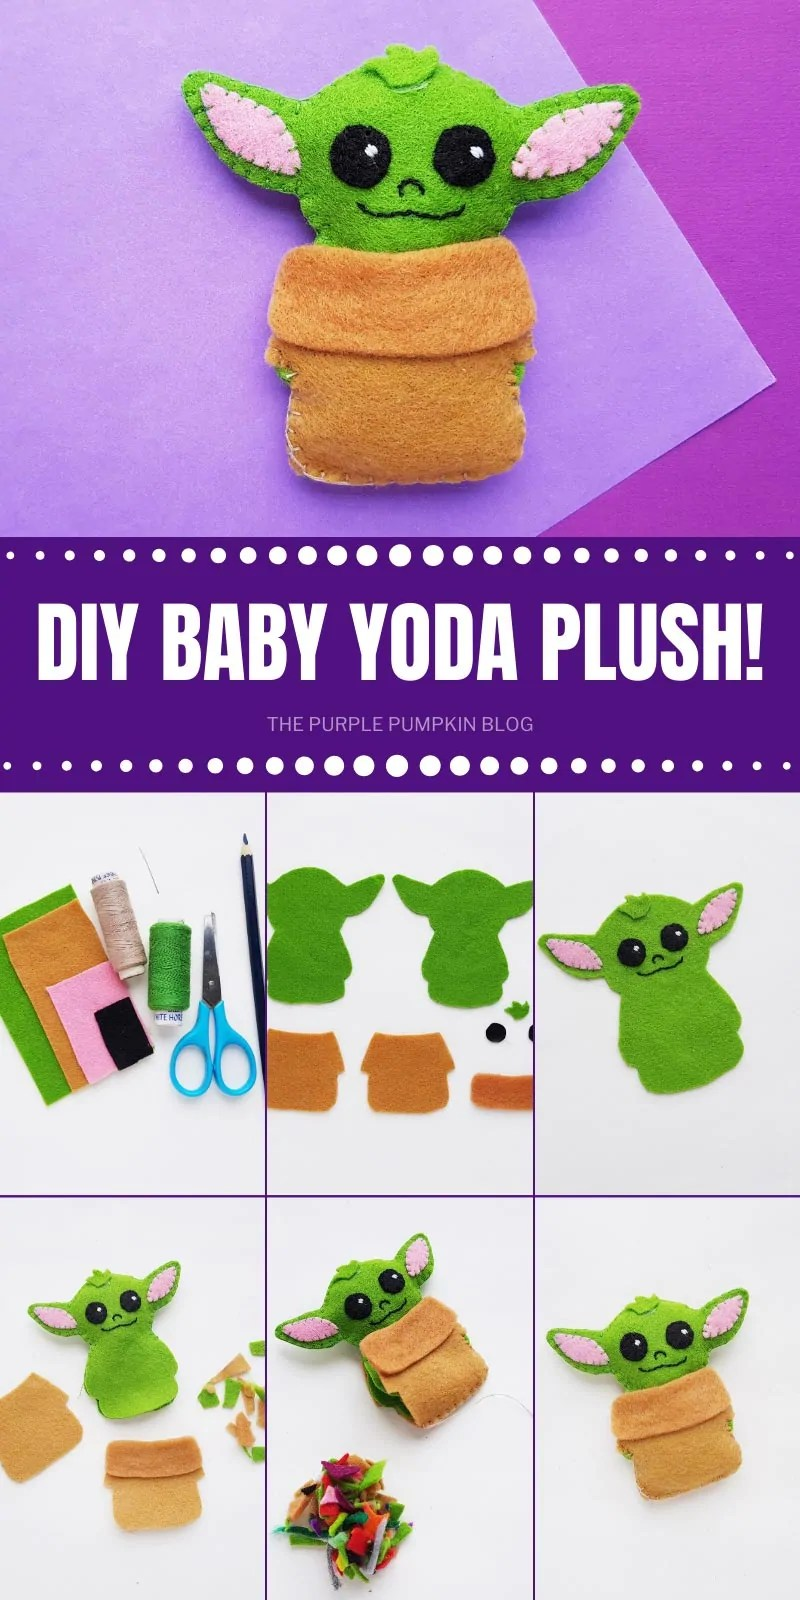 DIY Baby Yoda Plush with step by step photos demonstrating how to make him.